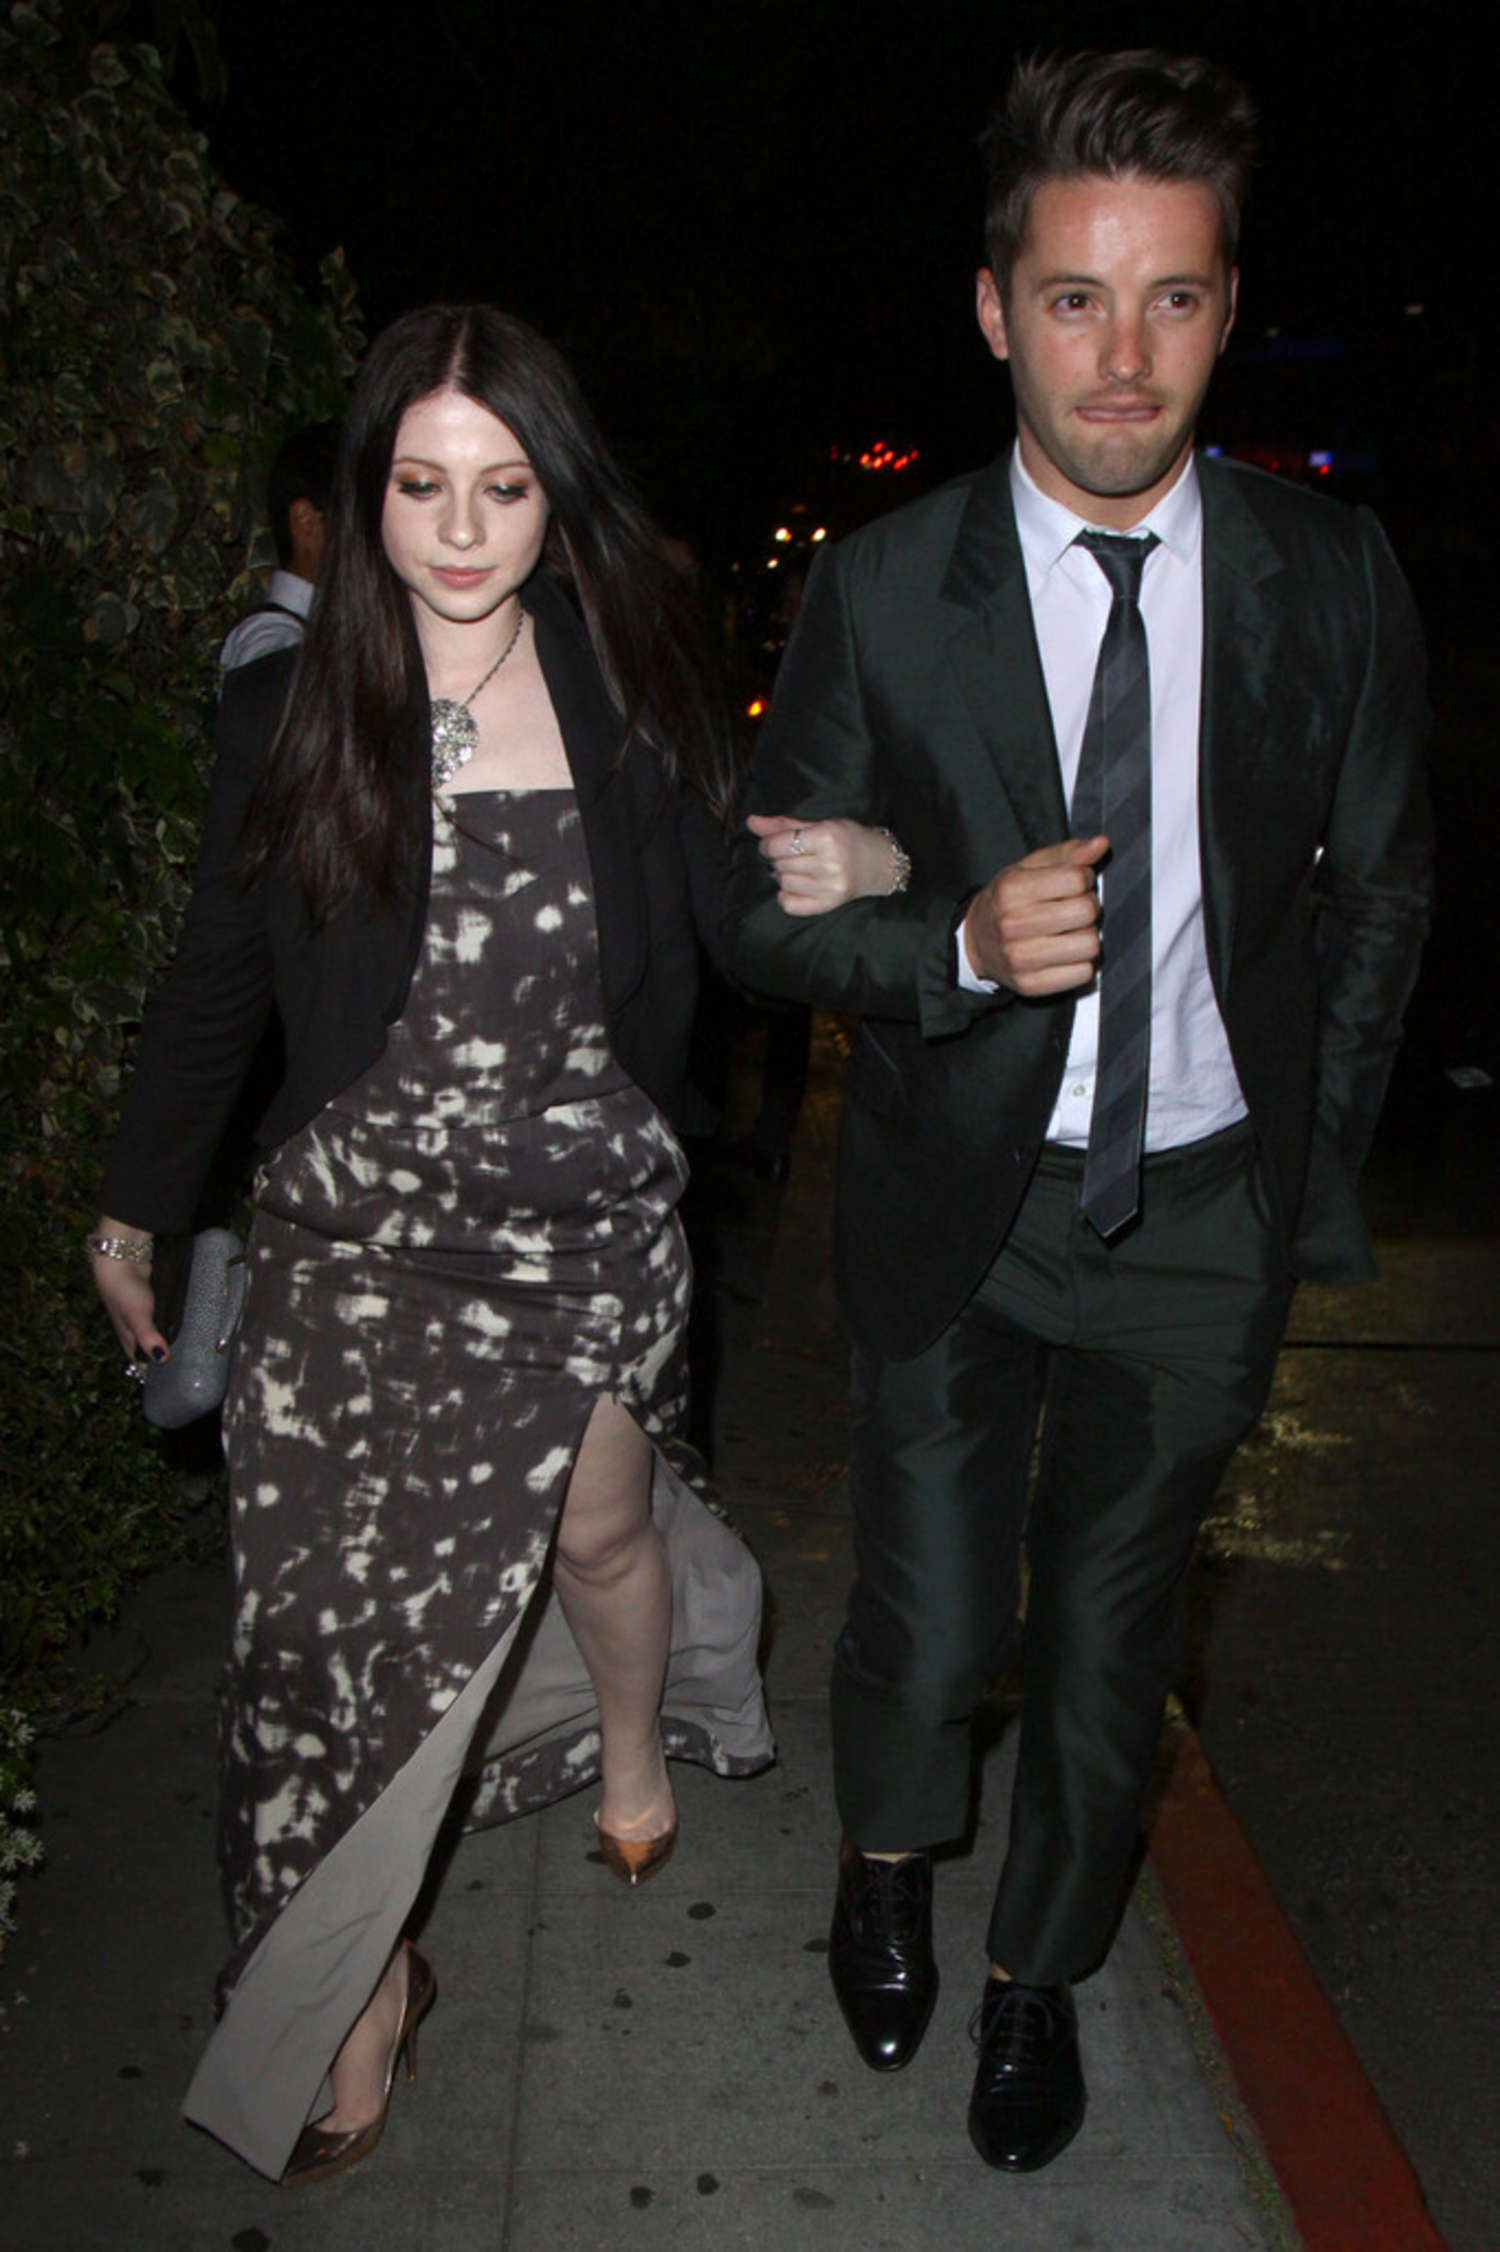 Michelle Trachtenberg leaves the Chateau Marmont in West Hollywood